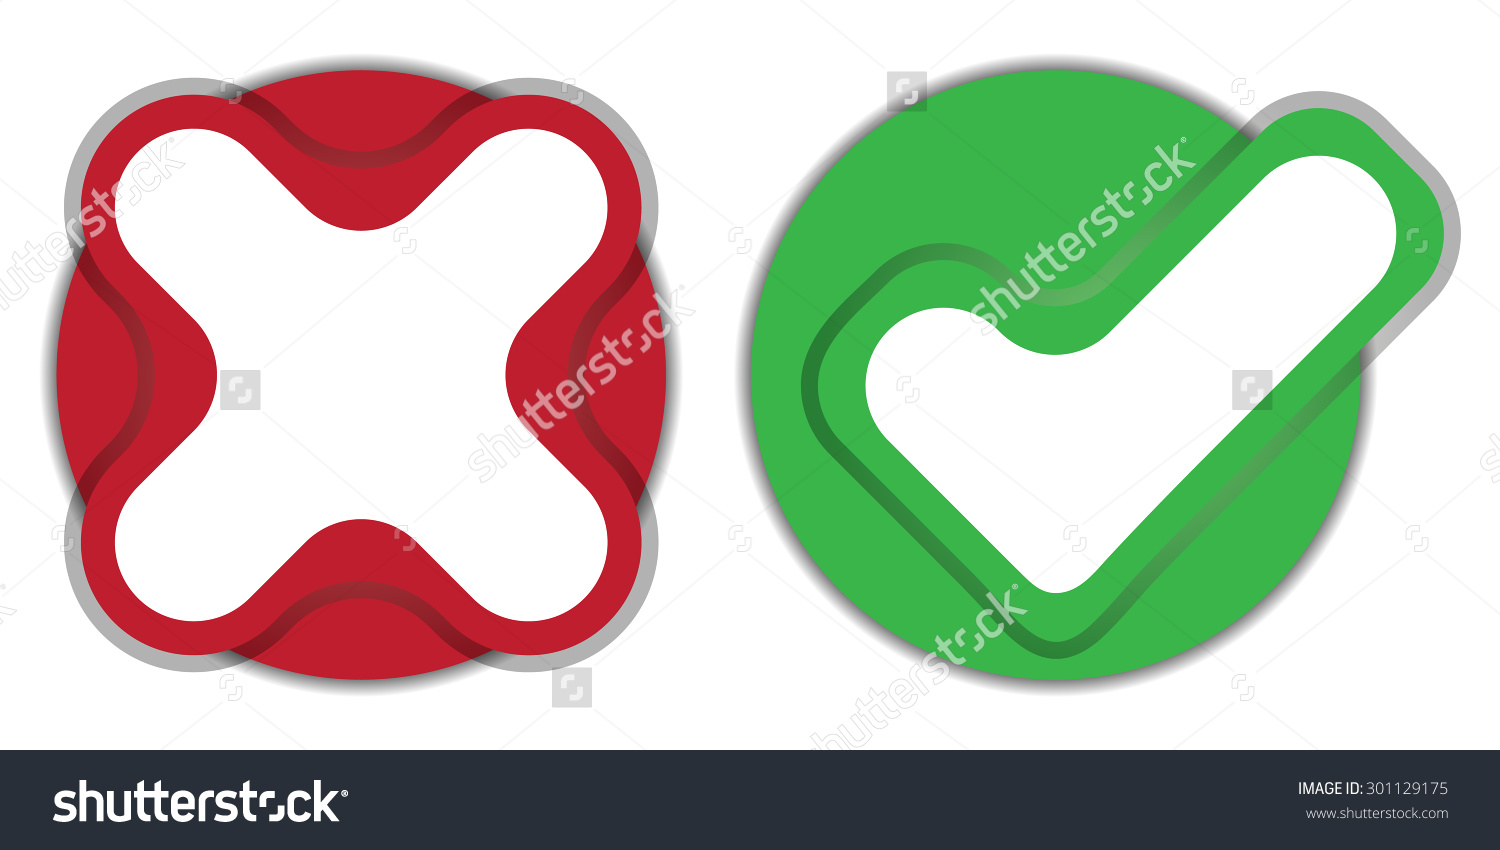 Choice clipart yes or no Collection Check Choice Yes red